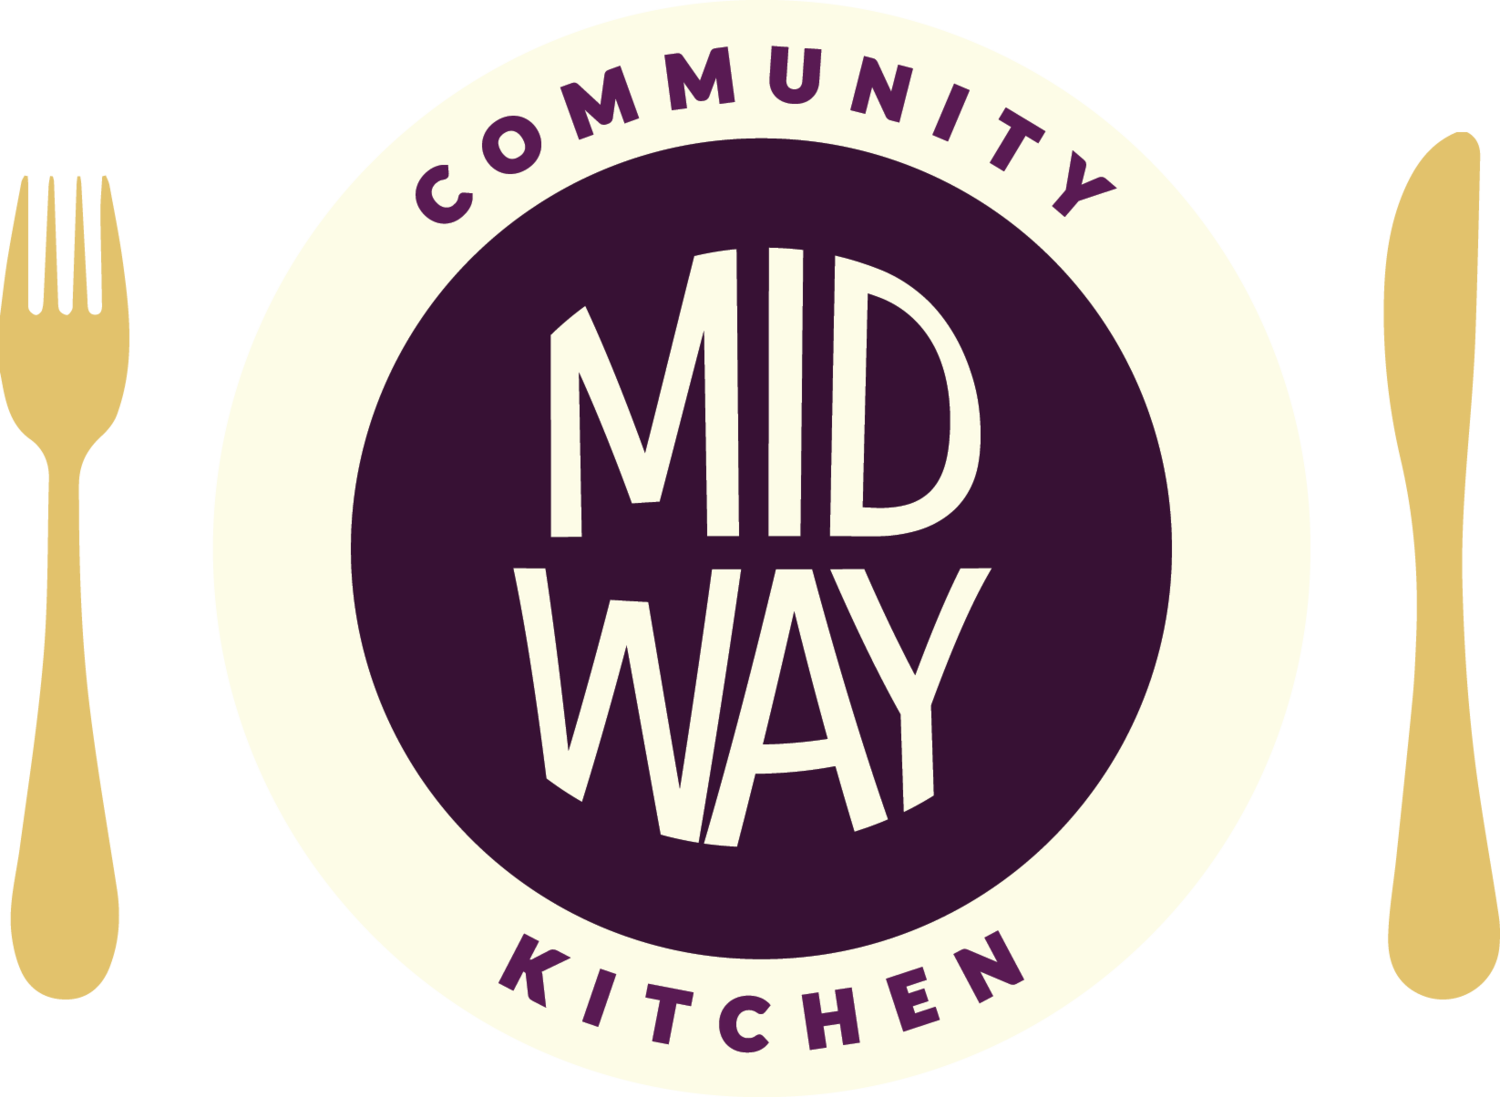 Midway Community Kitchen